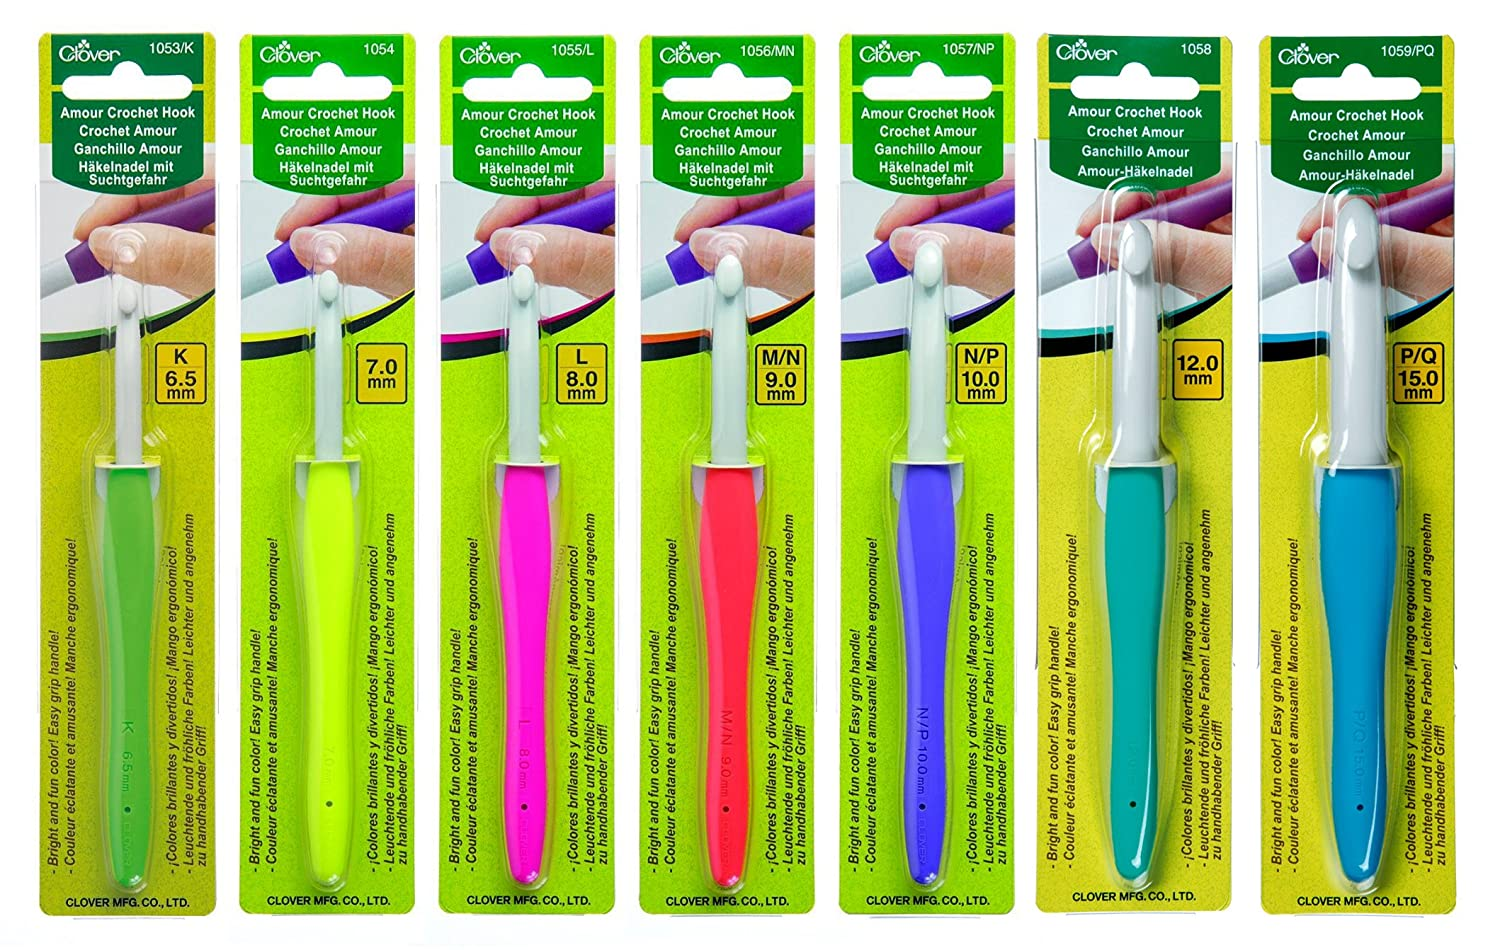 Clover Amour Crochet Hooks - Set of 7 - For Working with Thick Yarns 4336922814